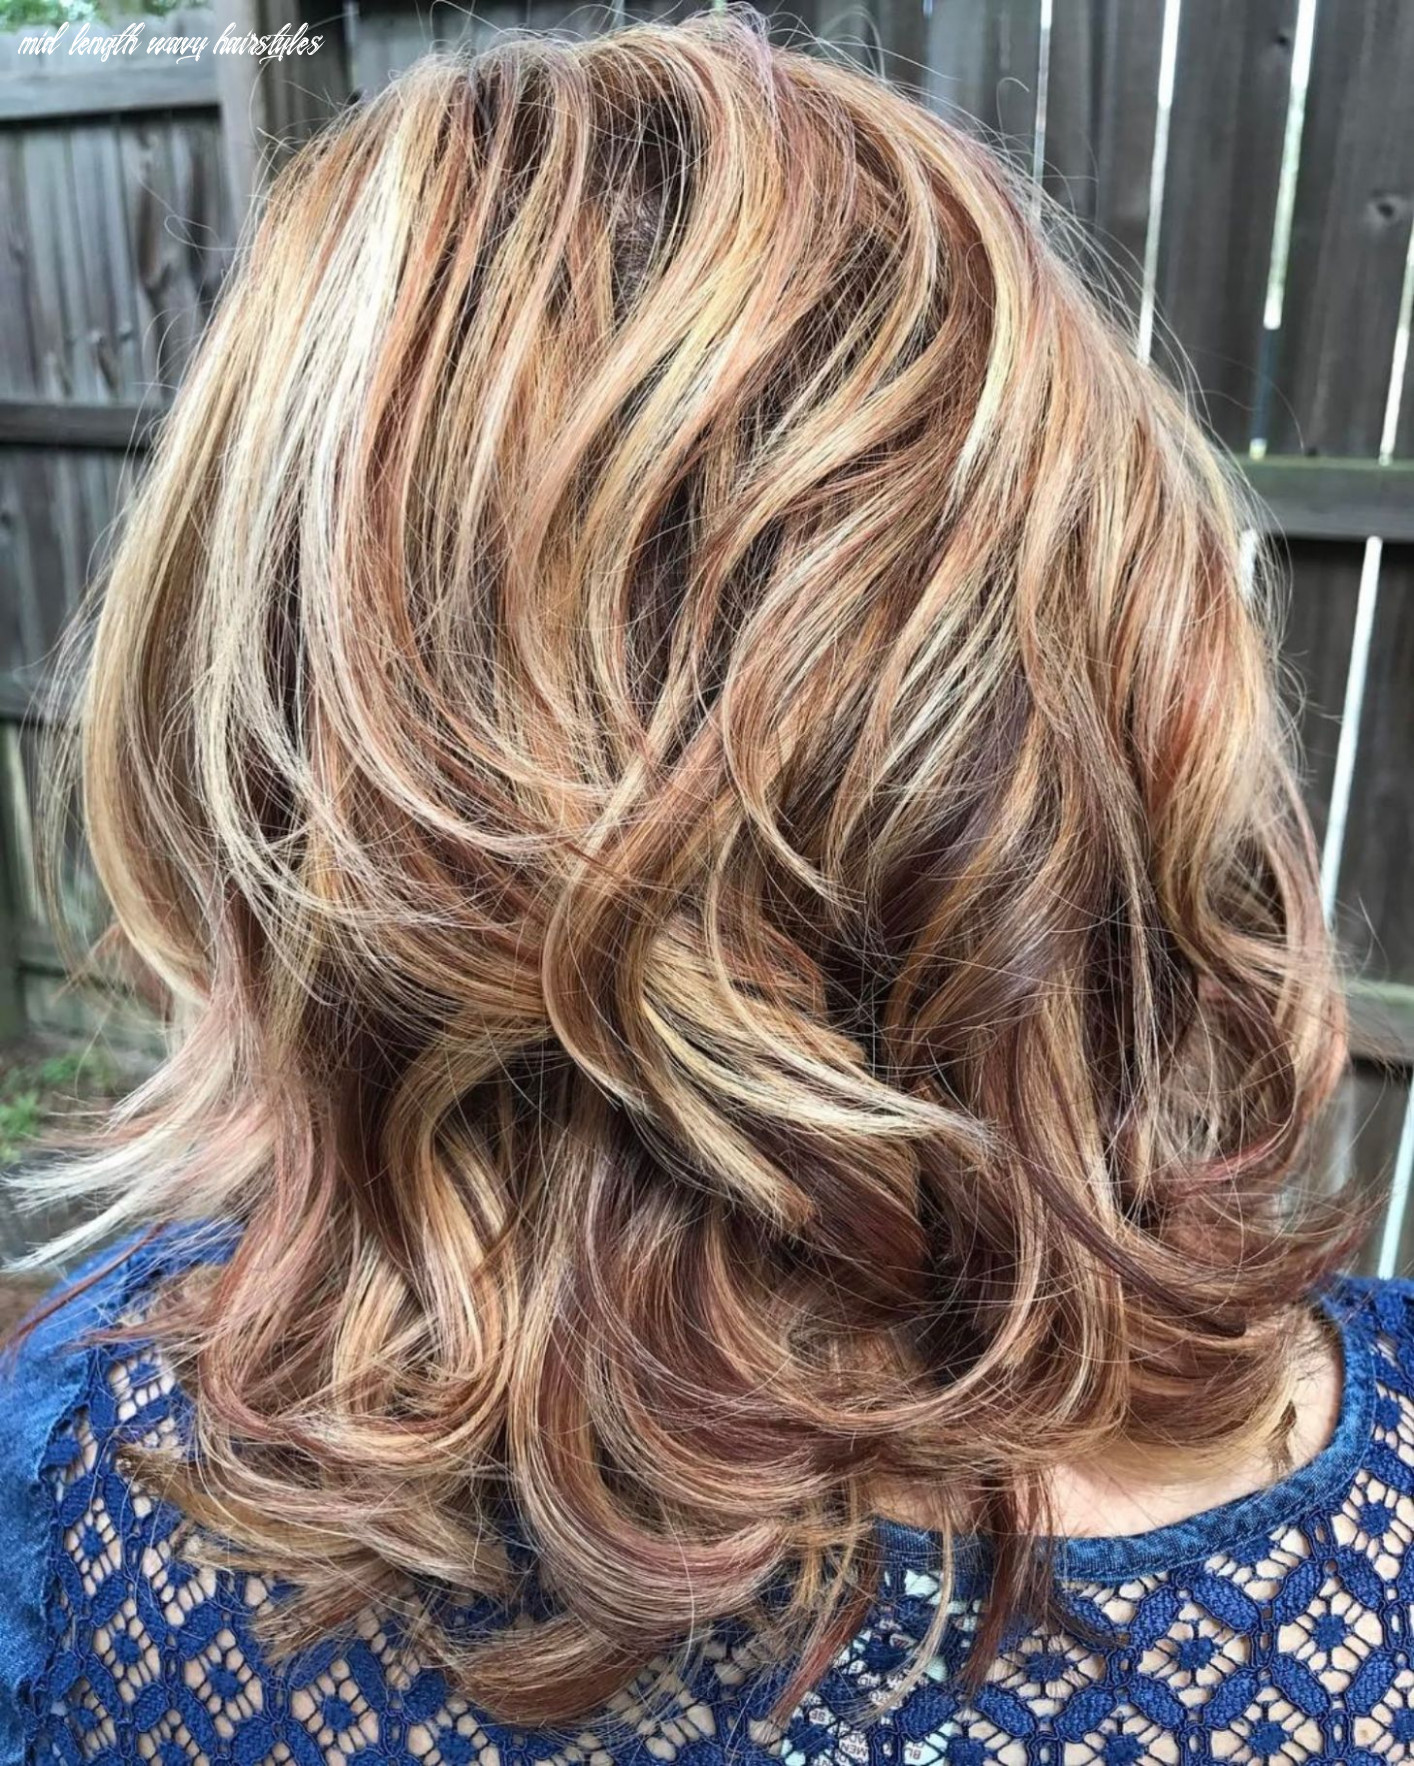 10 most magnetizing hairstyles for thick wavy hair | medium hair